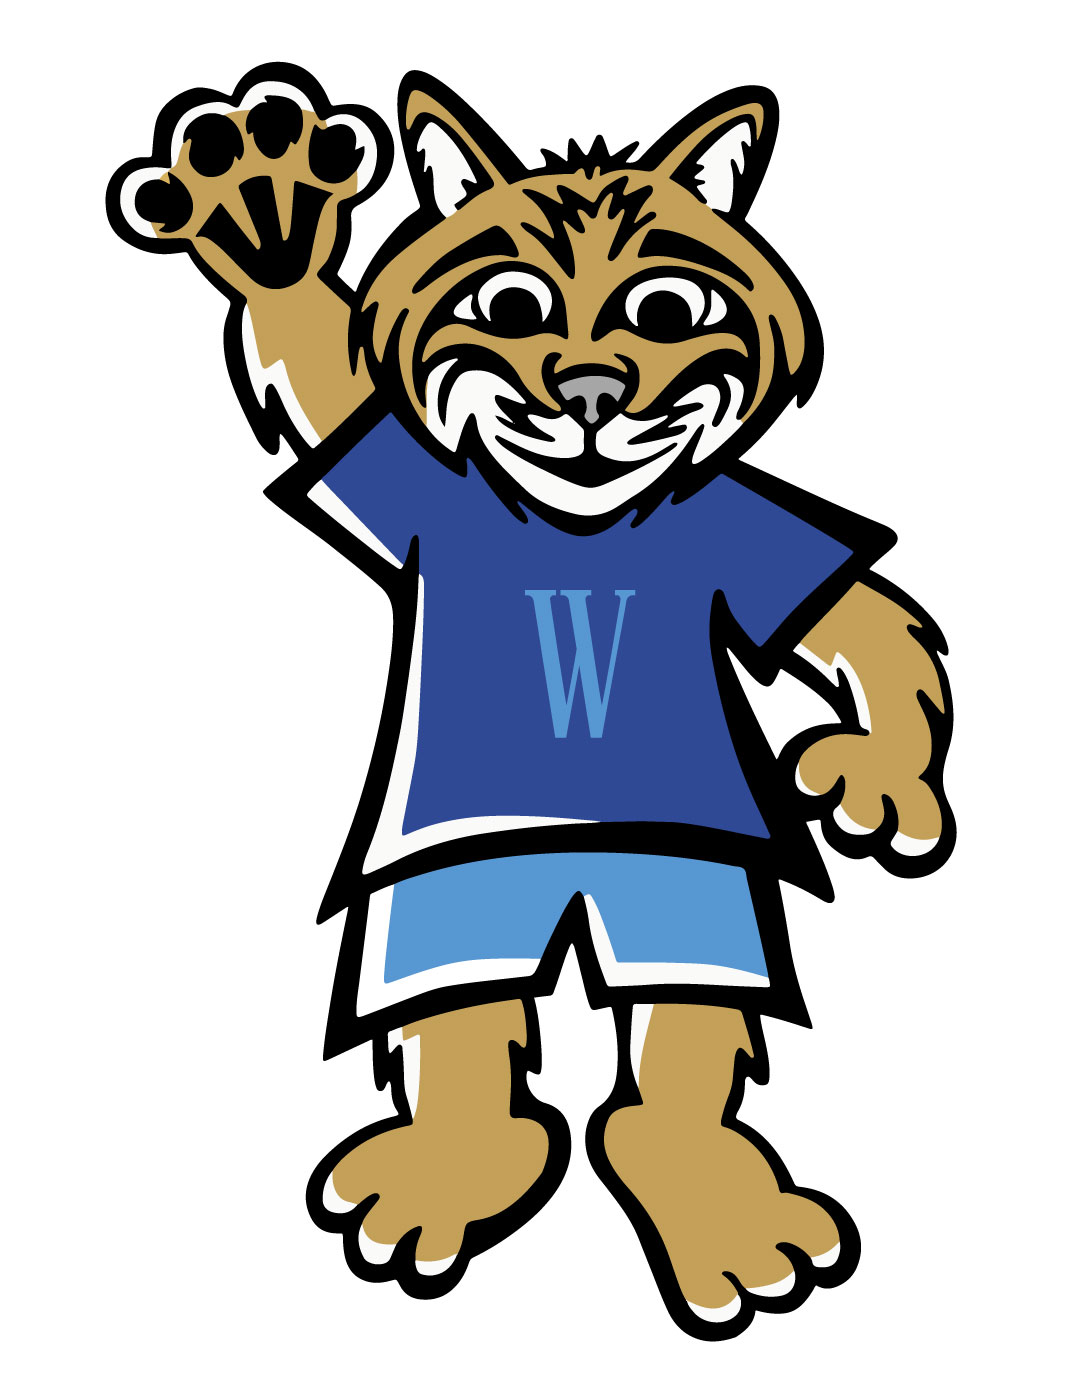 Transparent png free download. Wildcat clipart wilson